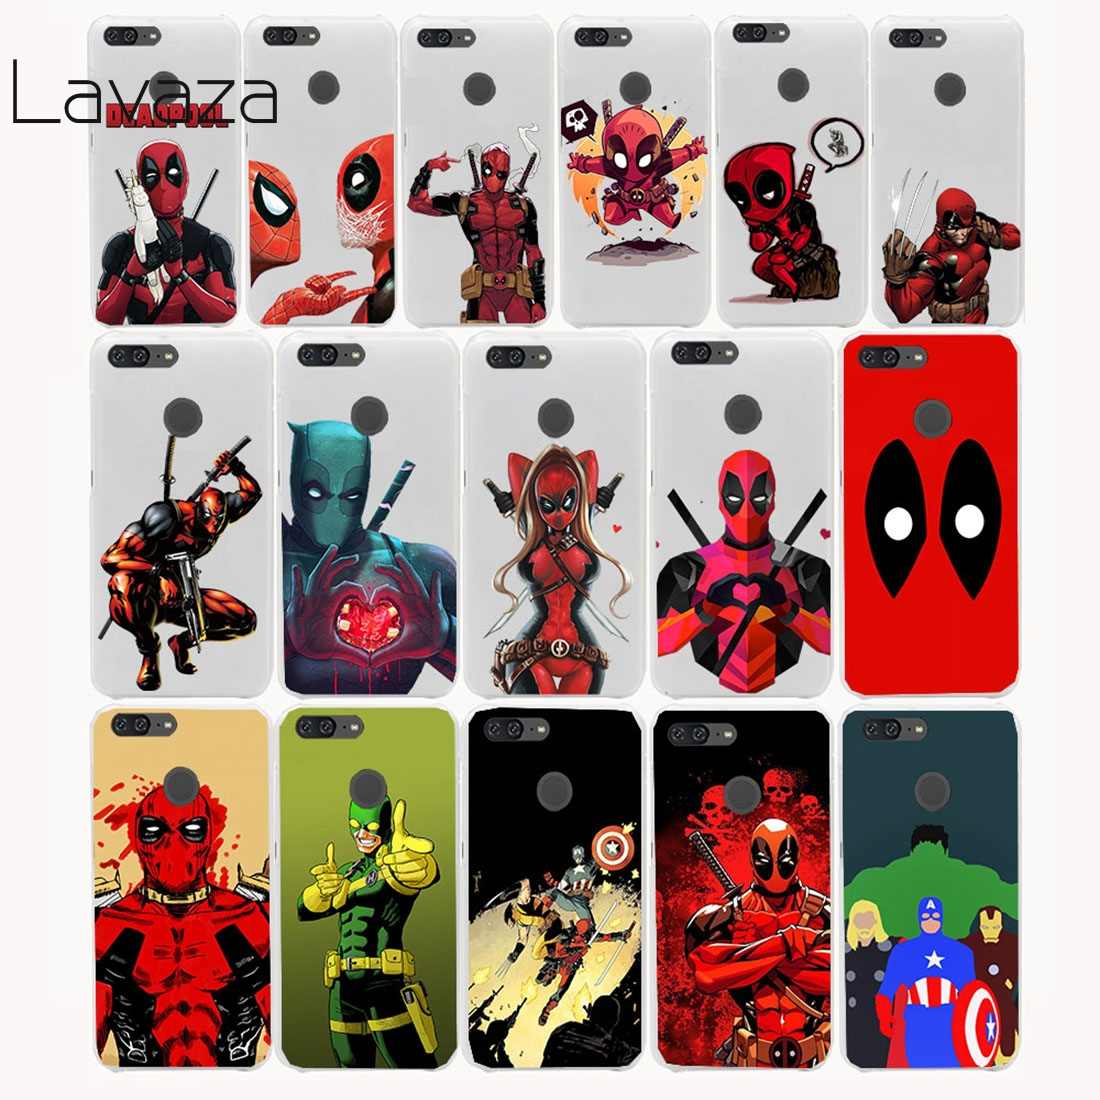 Lavaza 12FF Marvel Soldier Deadpool Hard Case for Huawei Honor play 9 8 lite 6A 7C 7X 7A 6C Pro 9I